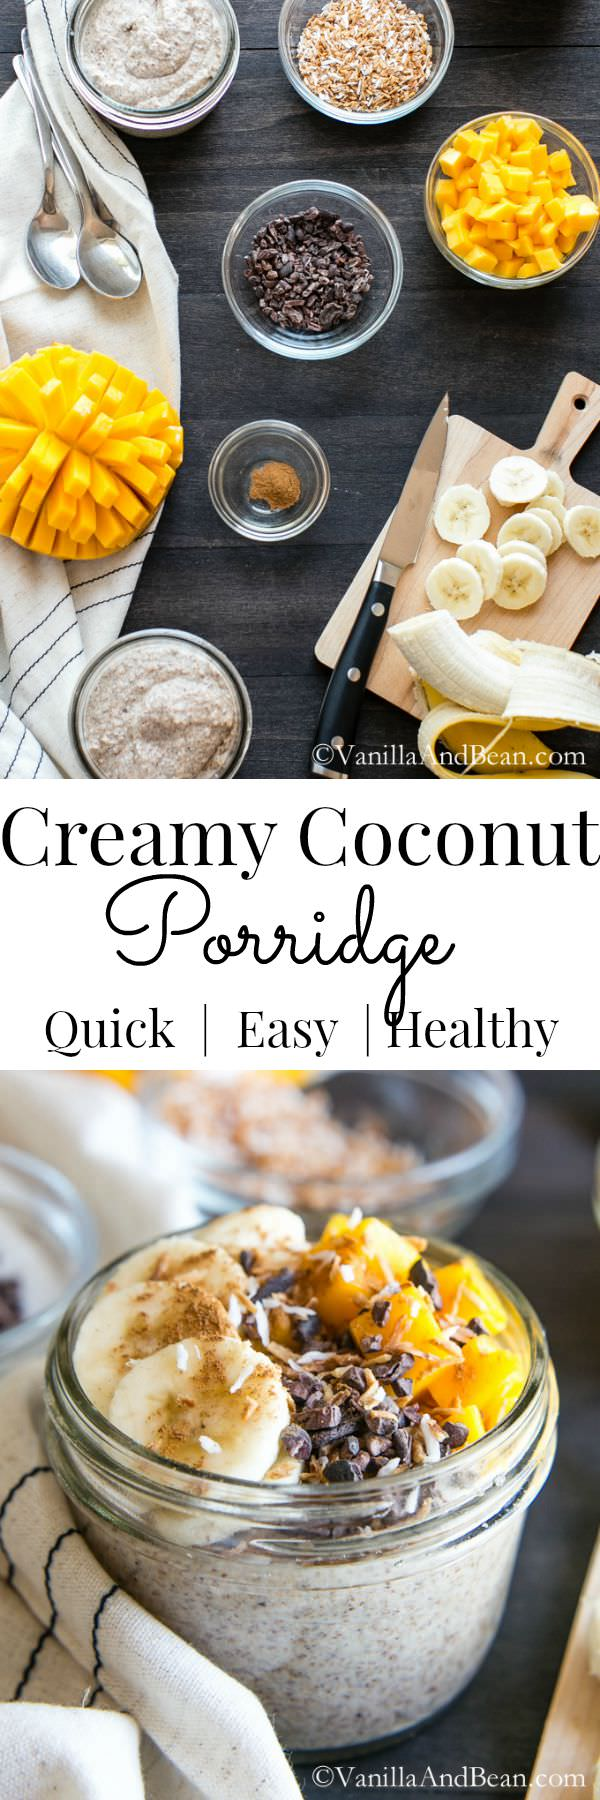 Creamy Coconut Porridge | Vanilla And Bean